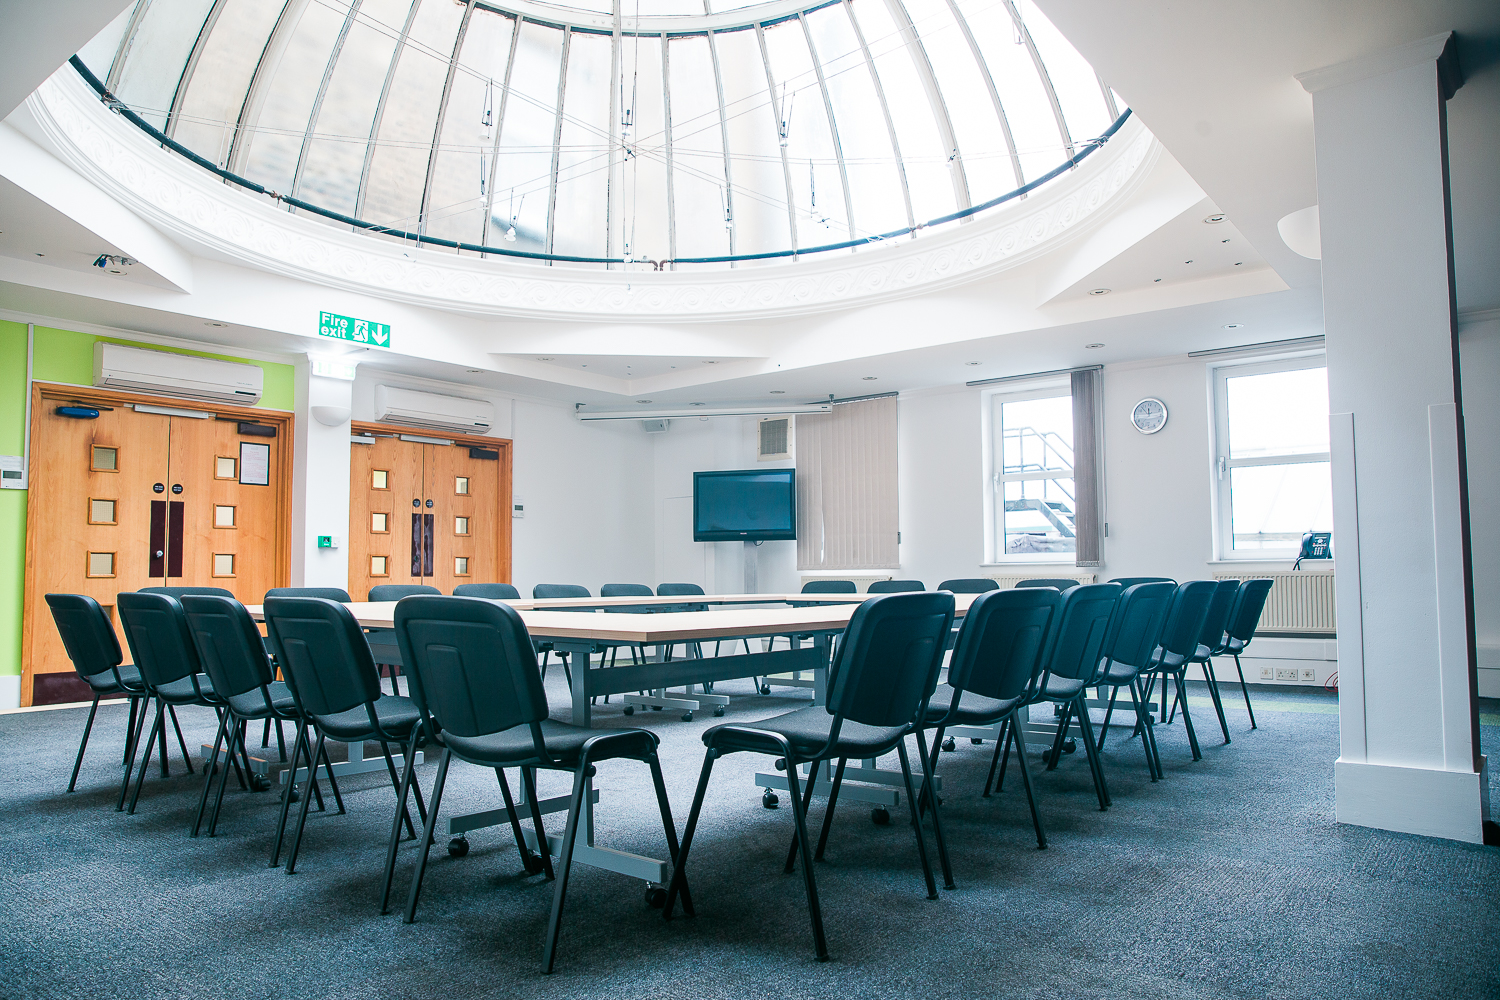 Resource for London - Charity providing conference, training, meeting rooms and exhibition space for private and voluntary sectors